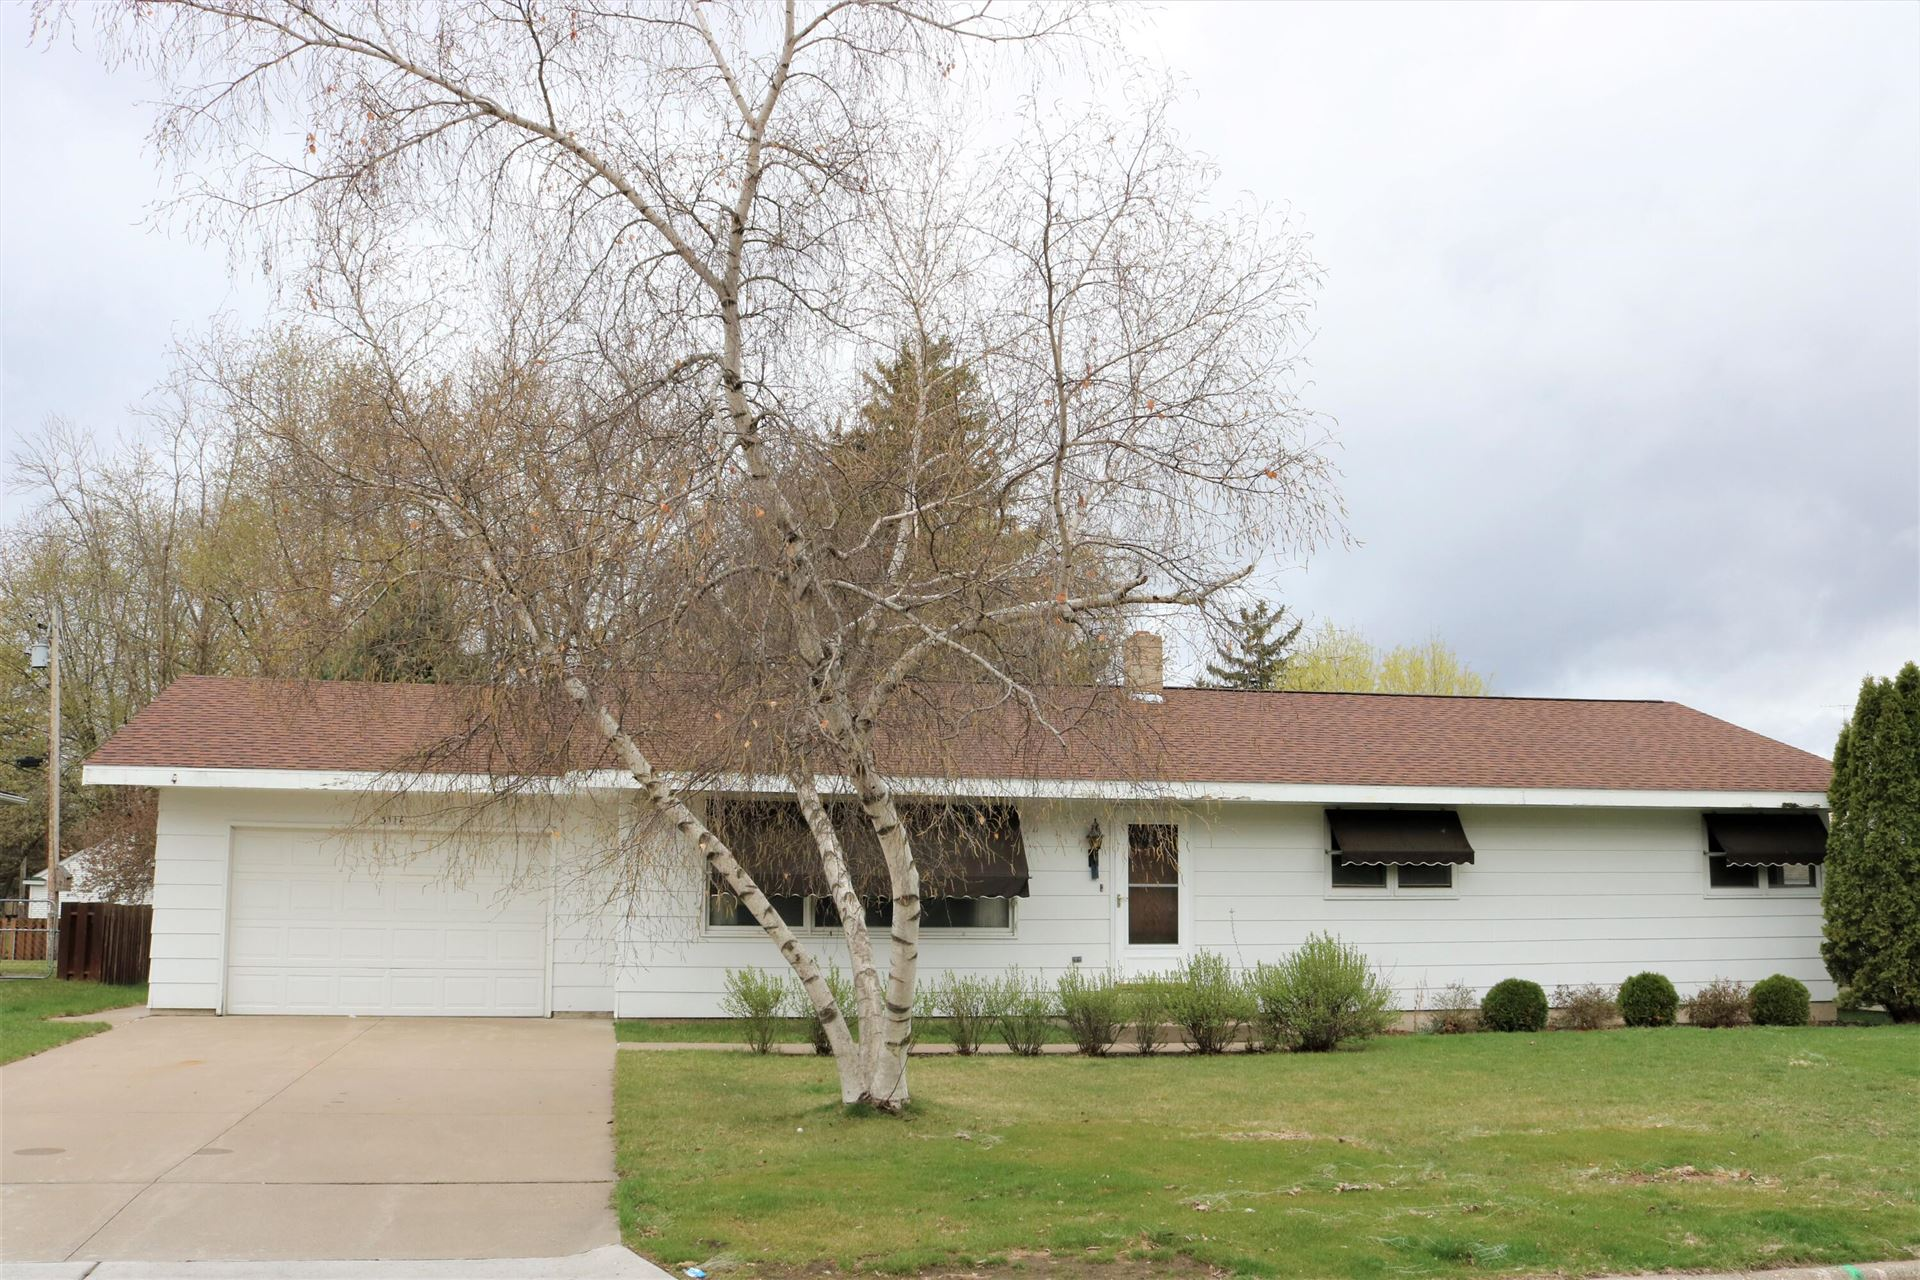 3116 25th ST S, La Crosse, WI 54601 - MLS#: 1735535